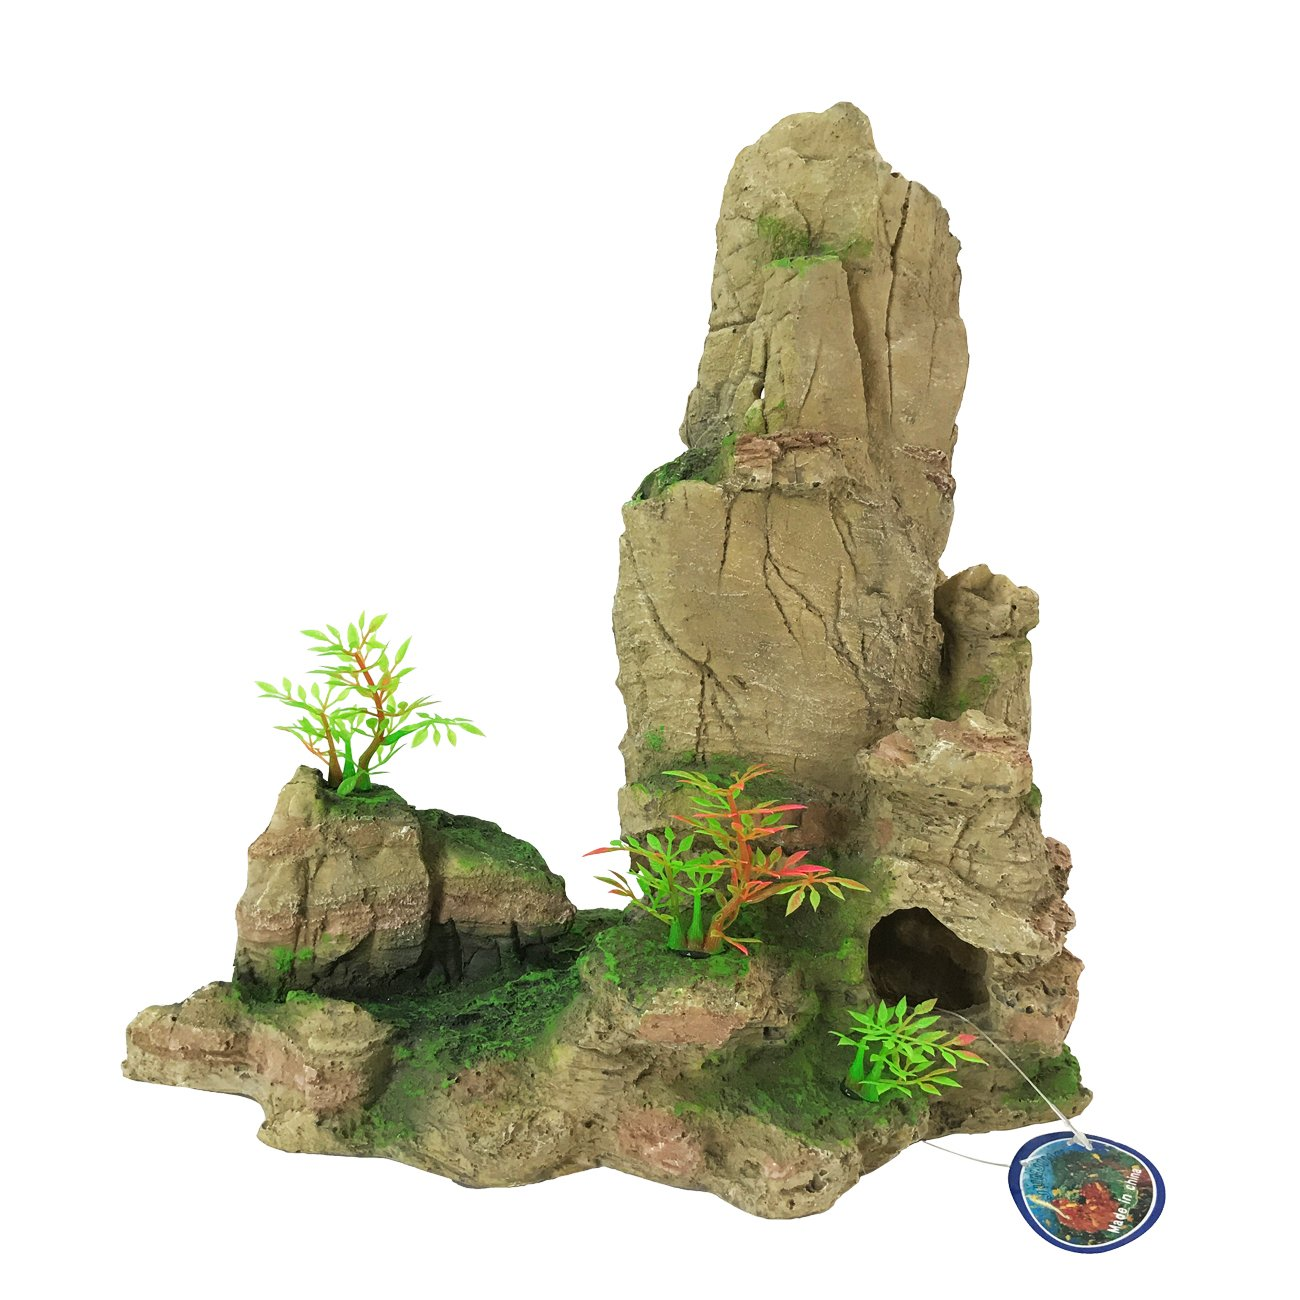 Saim Aquarium Artificial Mountain Cave Ornament Aqua Landscape Fish Tank Decorations